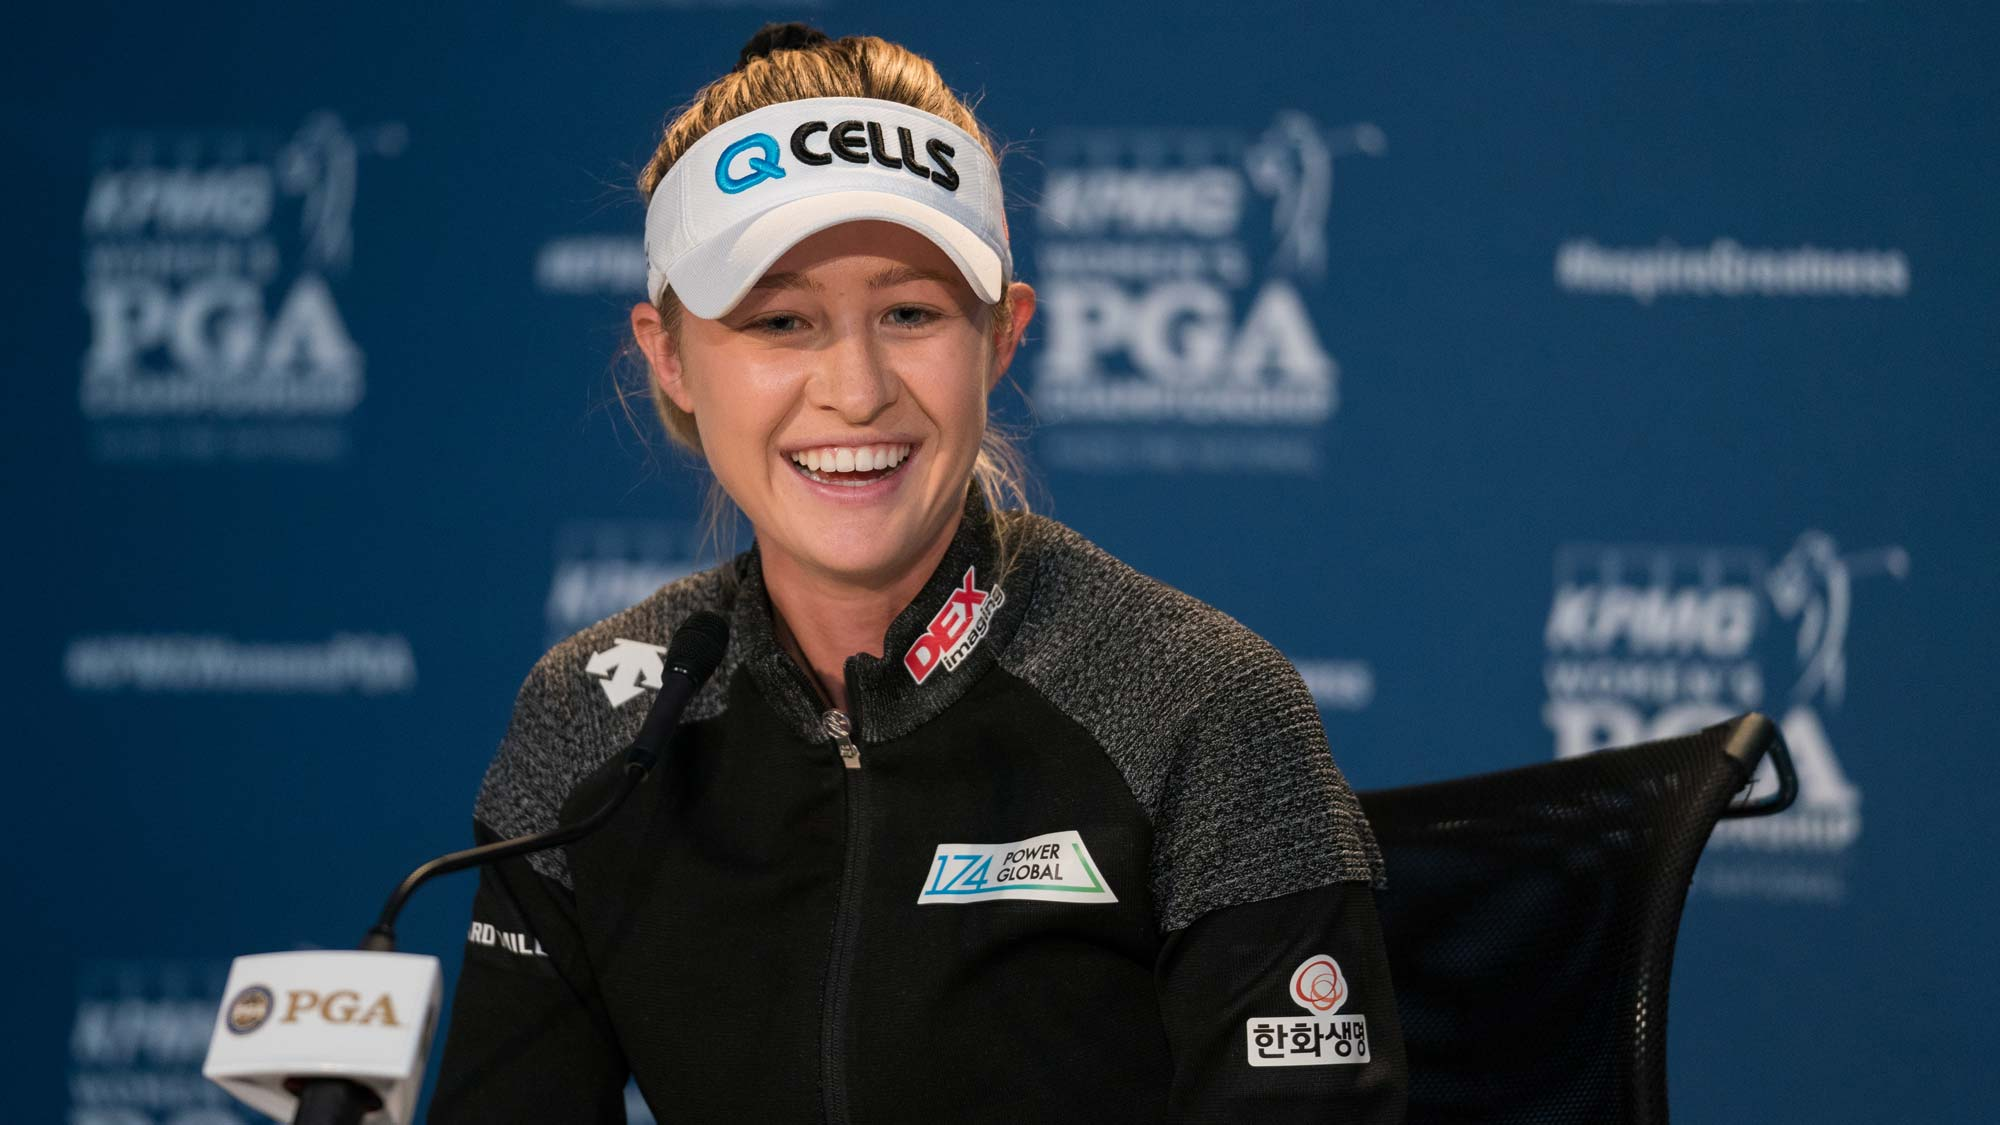 Nelly Korda speaks at a press conference during the practice round for the 65th KPMG Women's PGA Championship